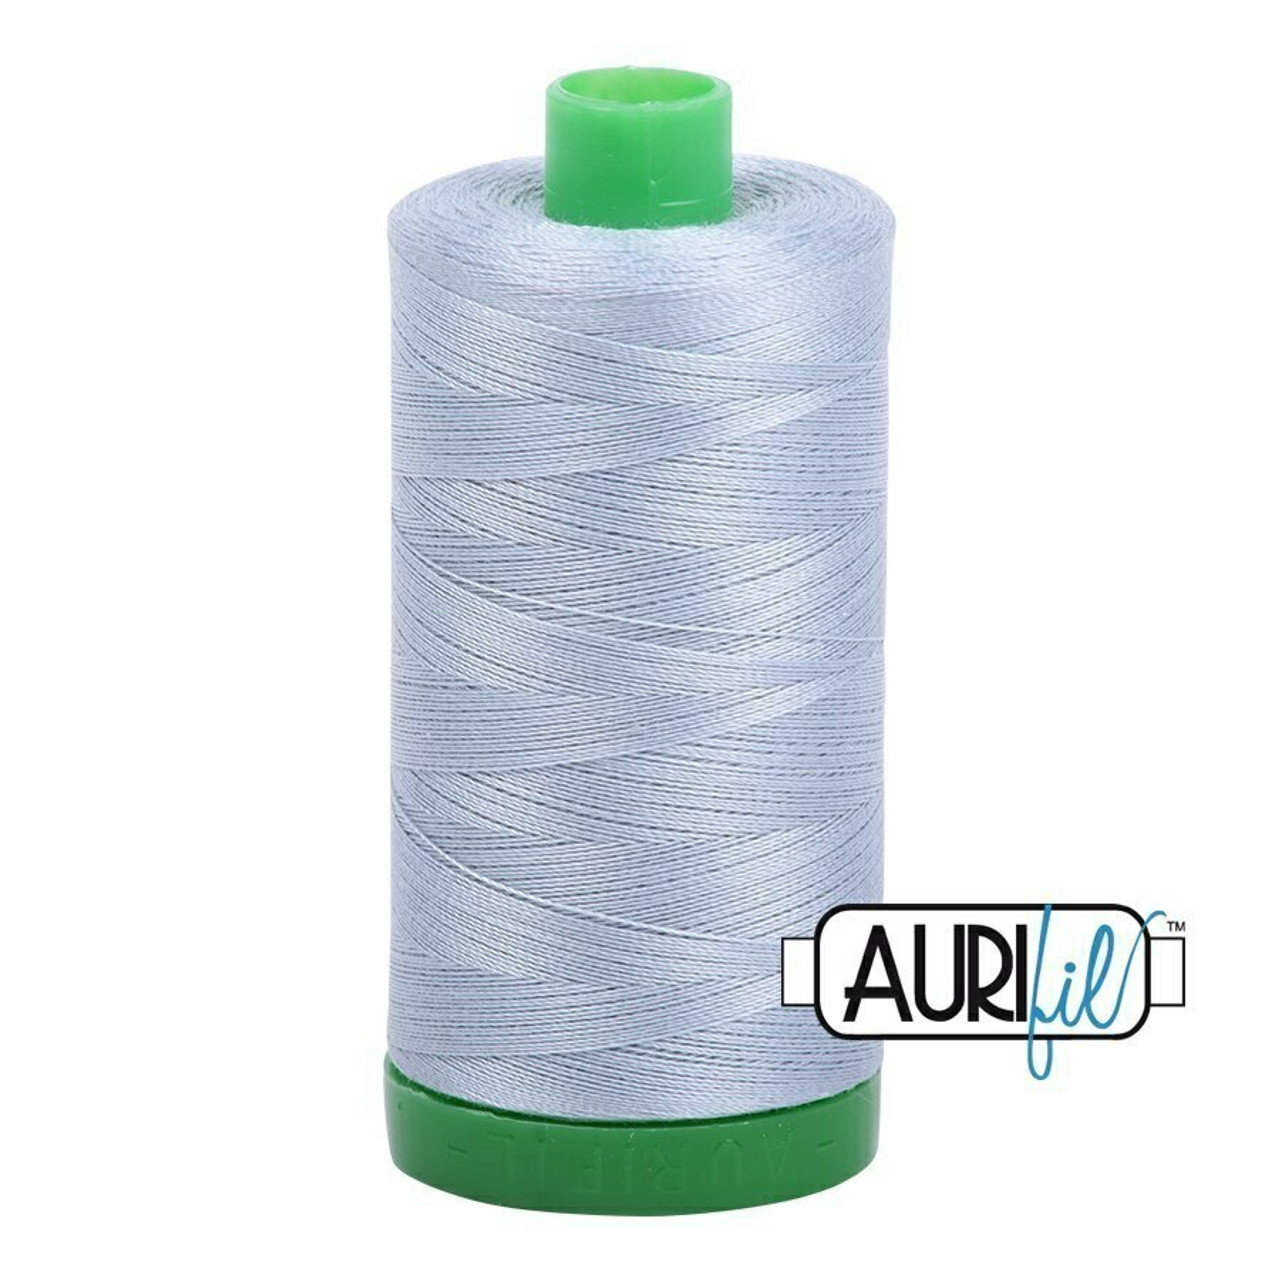 Aurifil 40wt Artic Sky (2612) thread